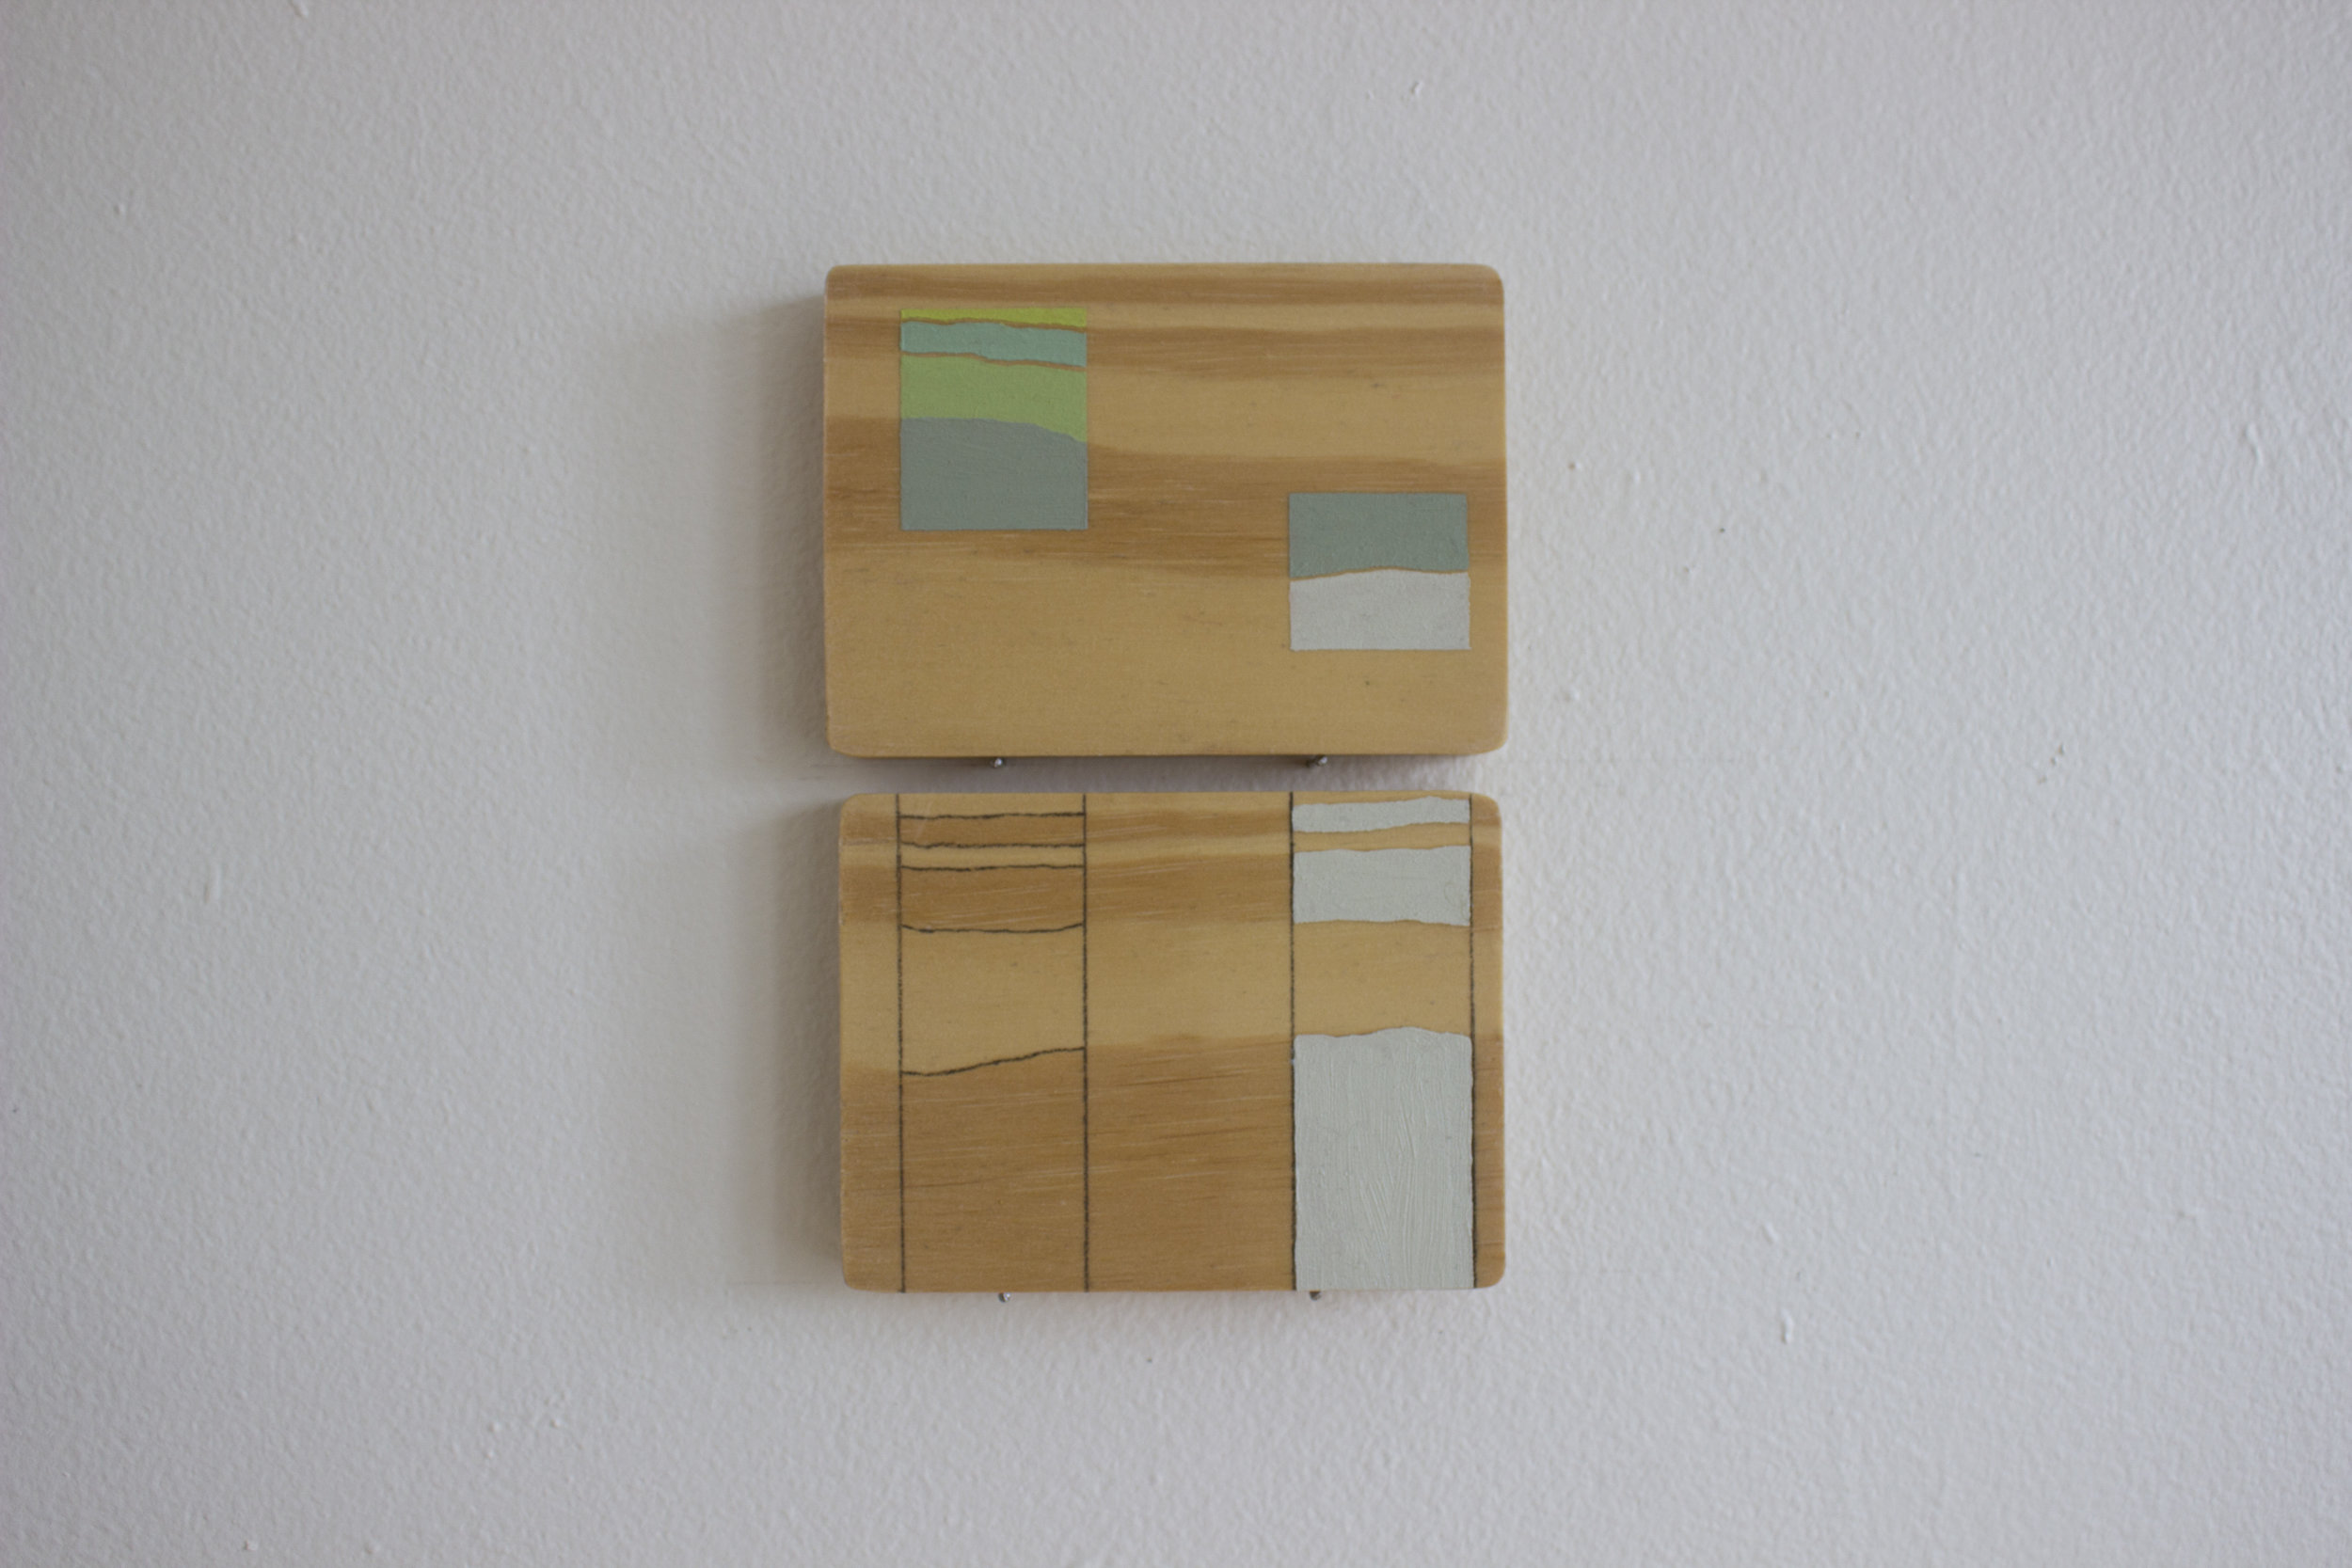 Tracie Hayes,  Grain-paint Translation II,  2018, Oil and graphite on wood